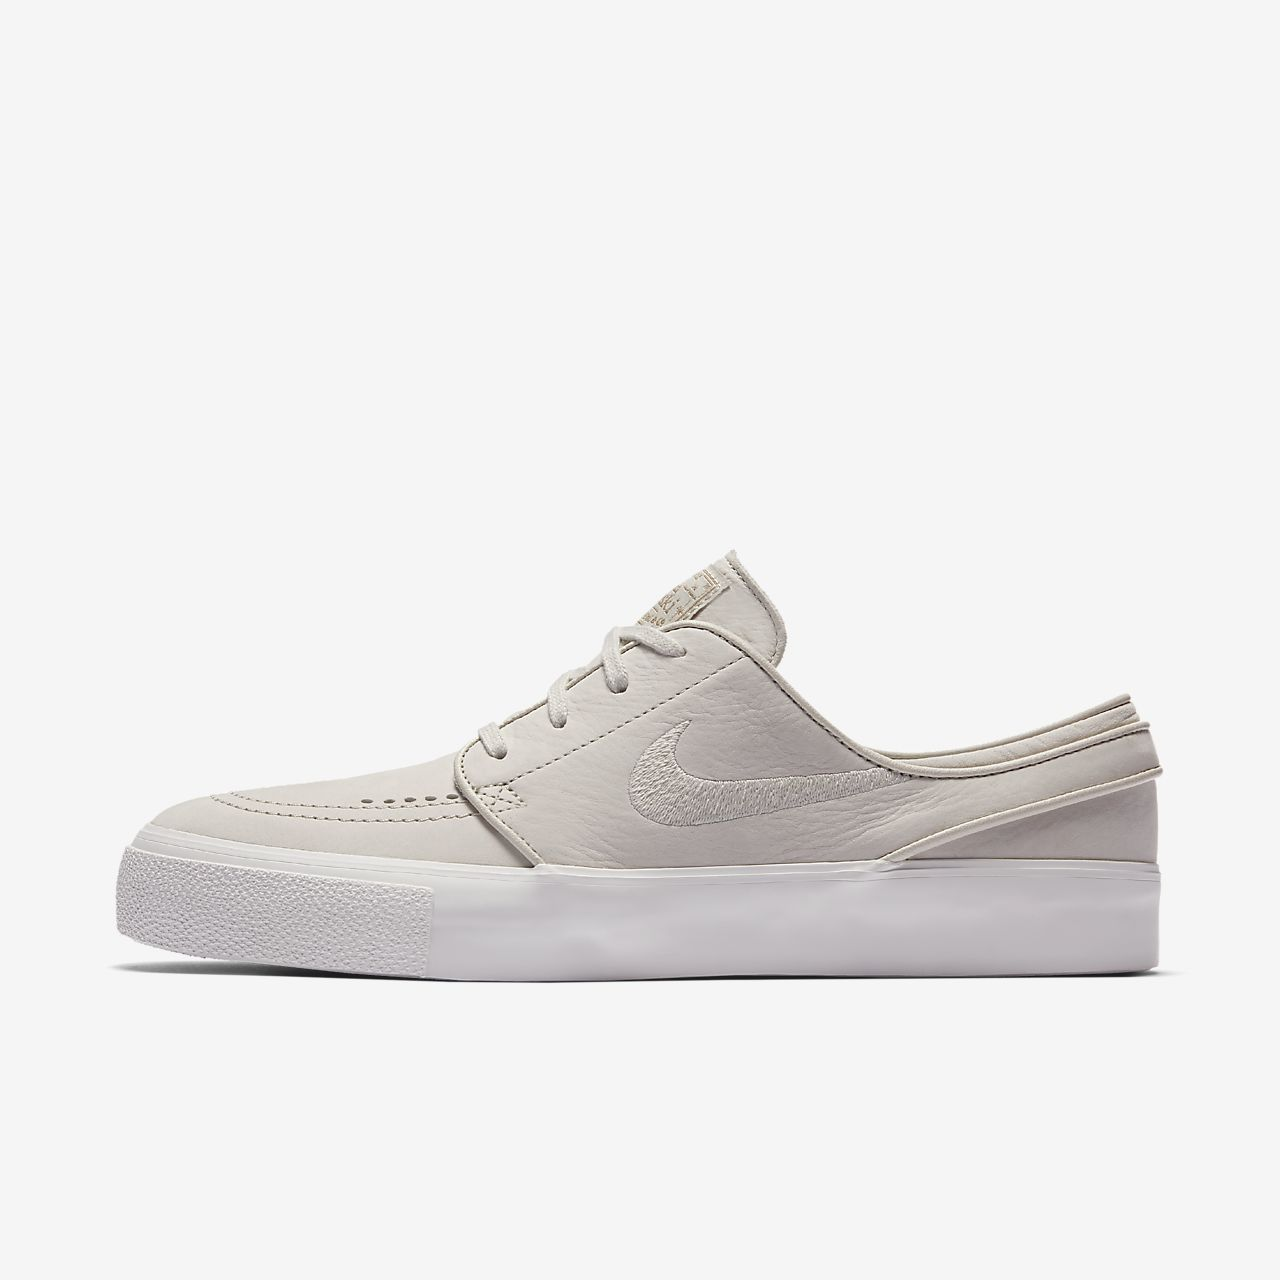 Chaussure de skateboard Nike SB Zoom Stefan Janoski High Tape Deconstructed pour Homme